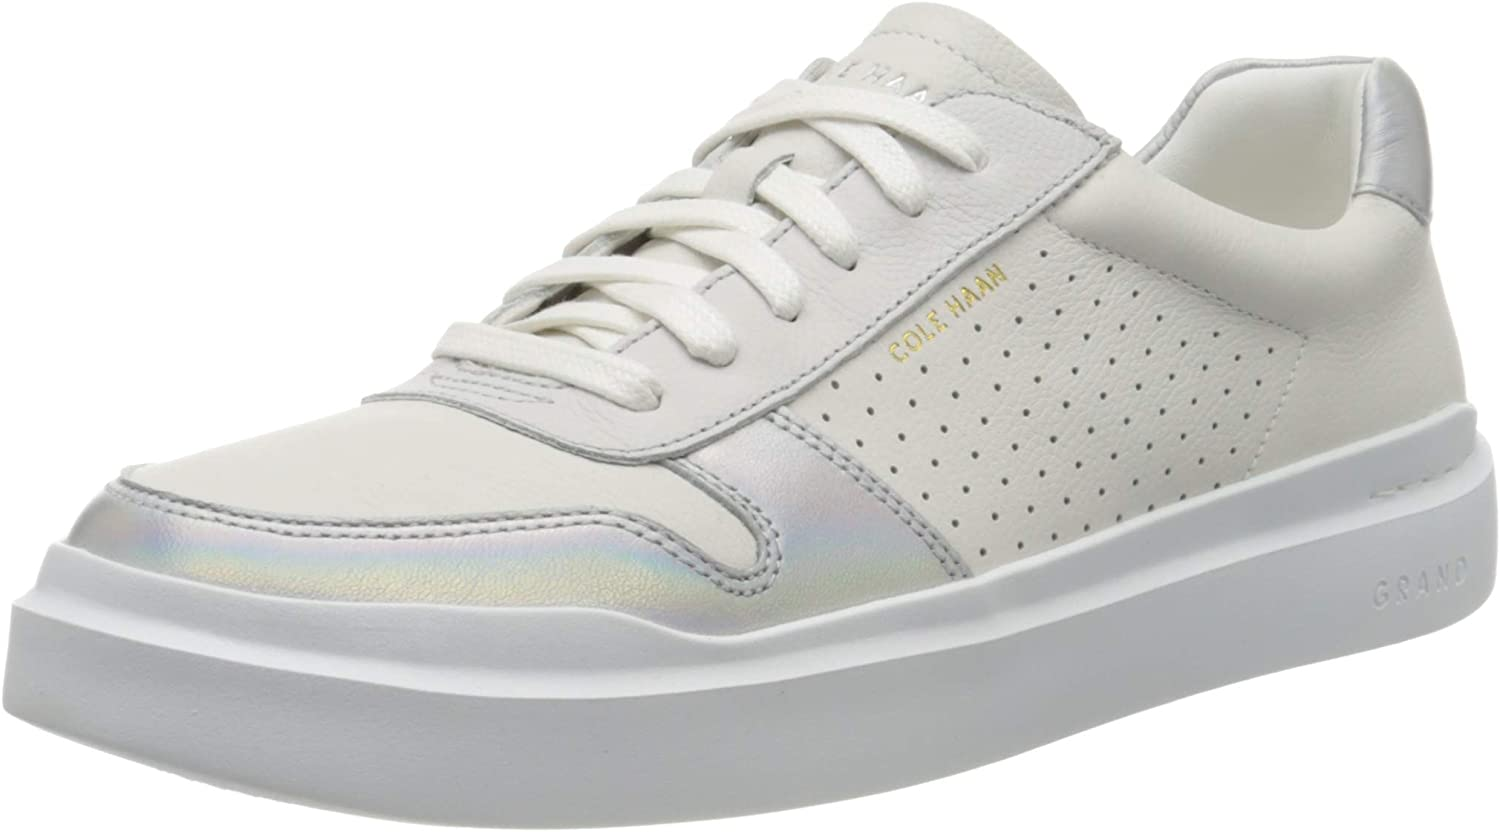 Cole Haan Womens Rally Court Sport E Fashion Sneakers White